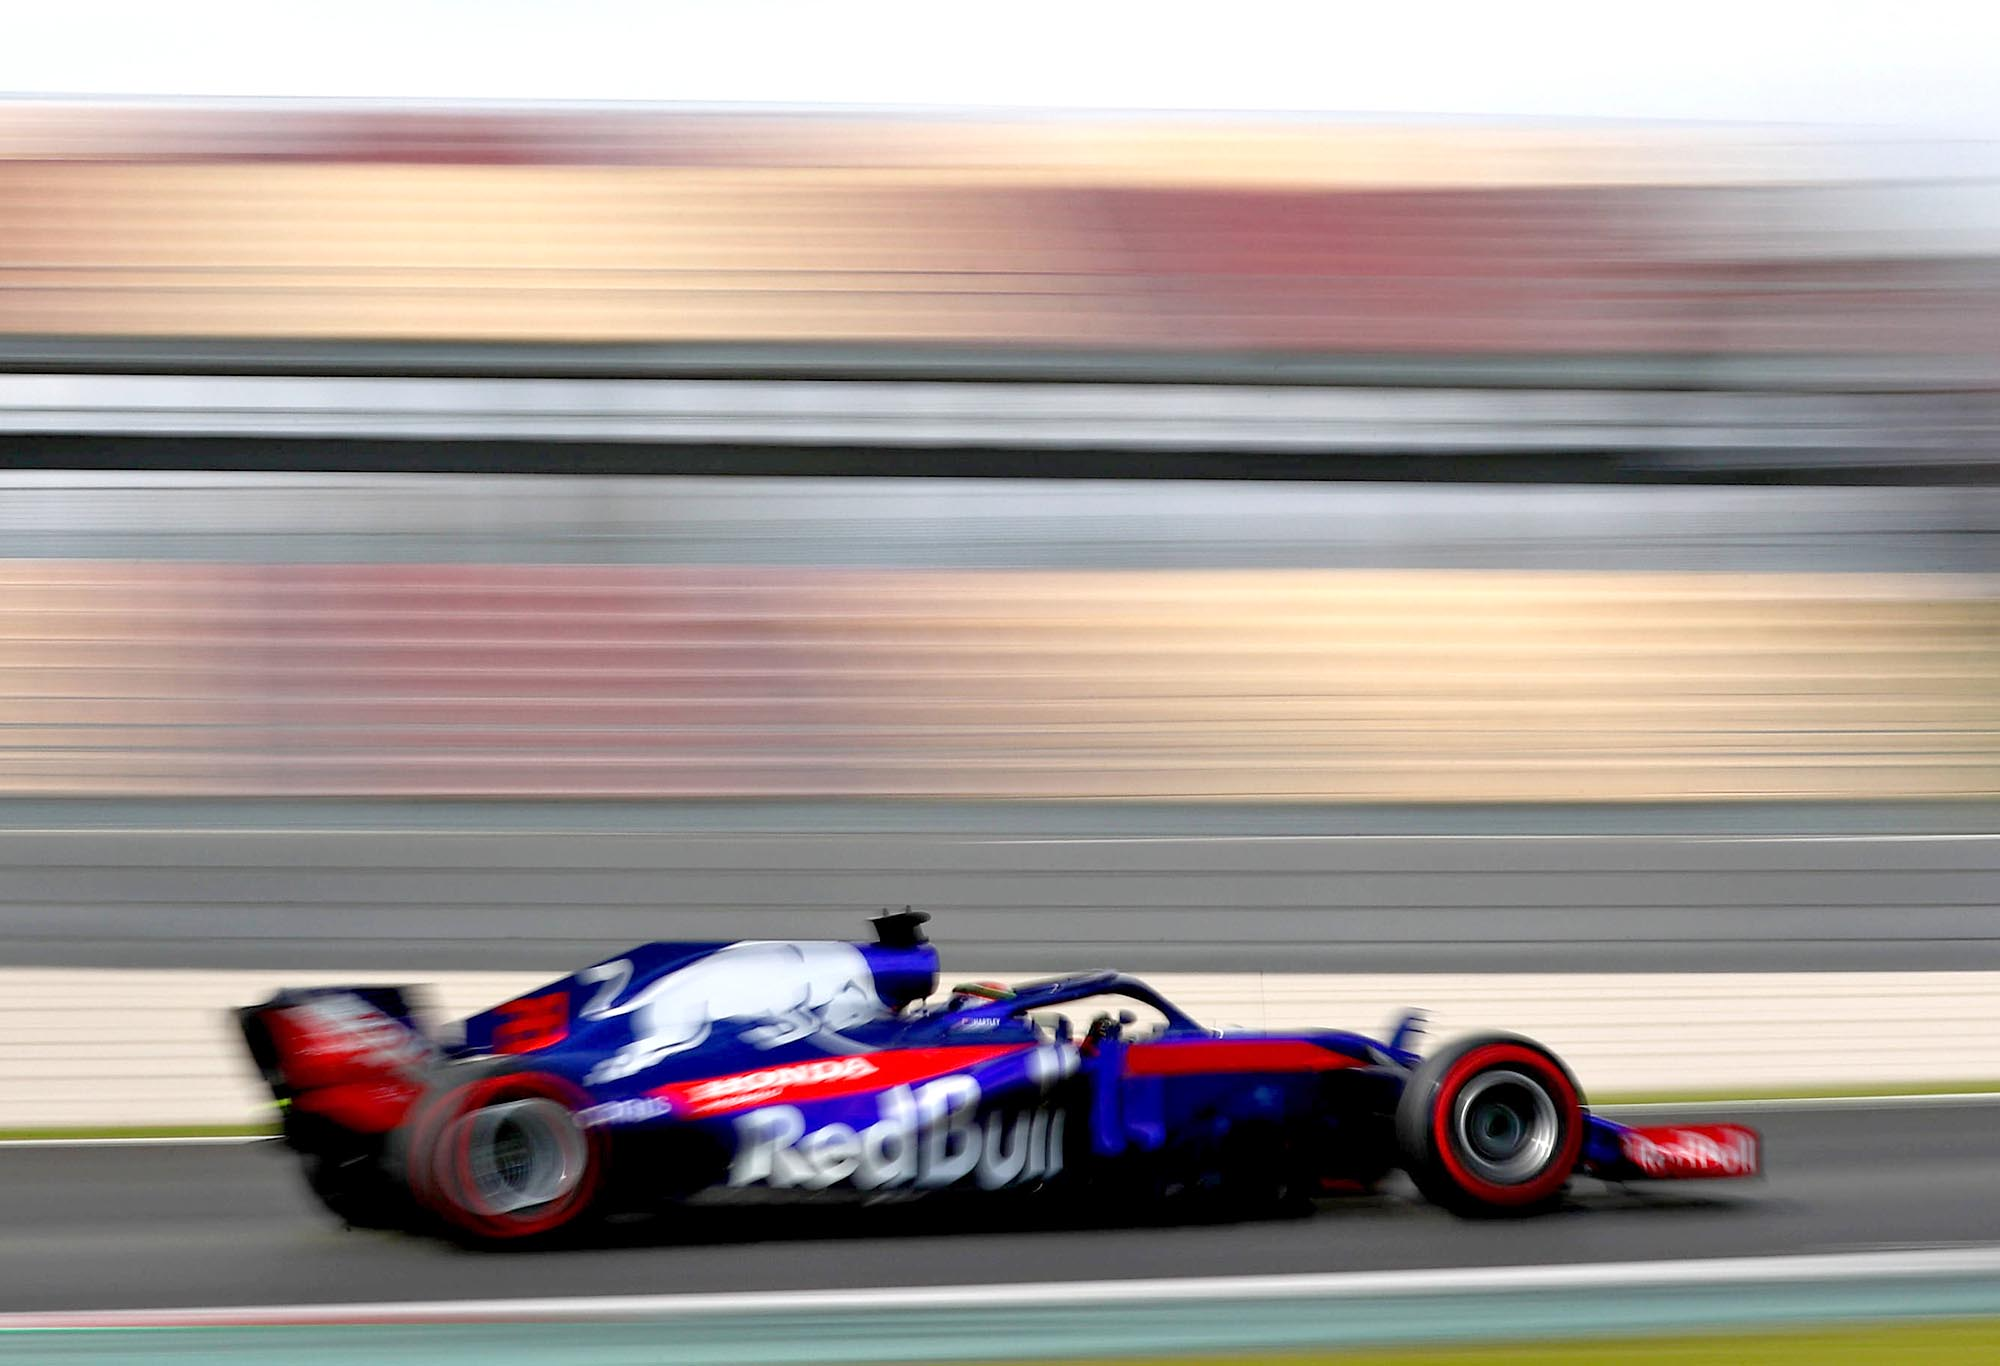 Toro Rosso's Brendon Hartley during 2018 preseason testing